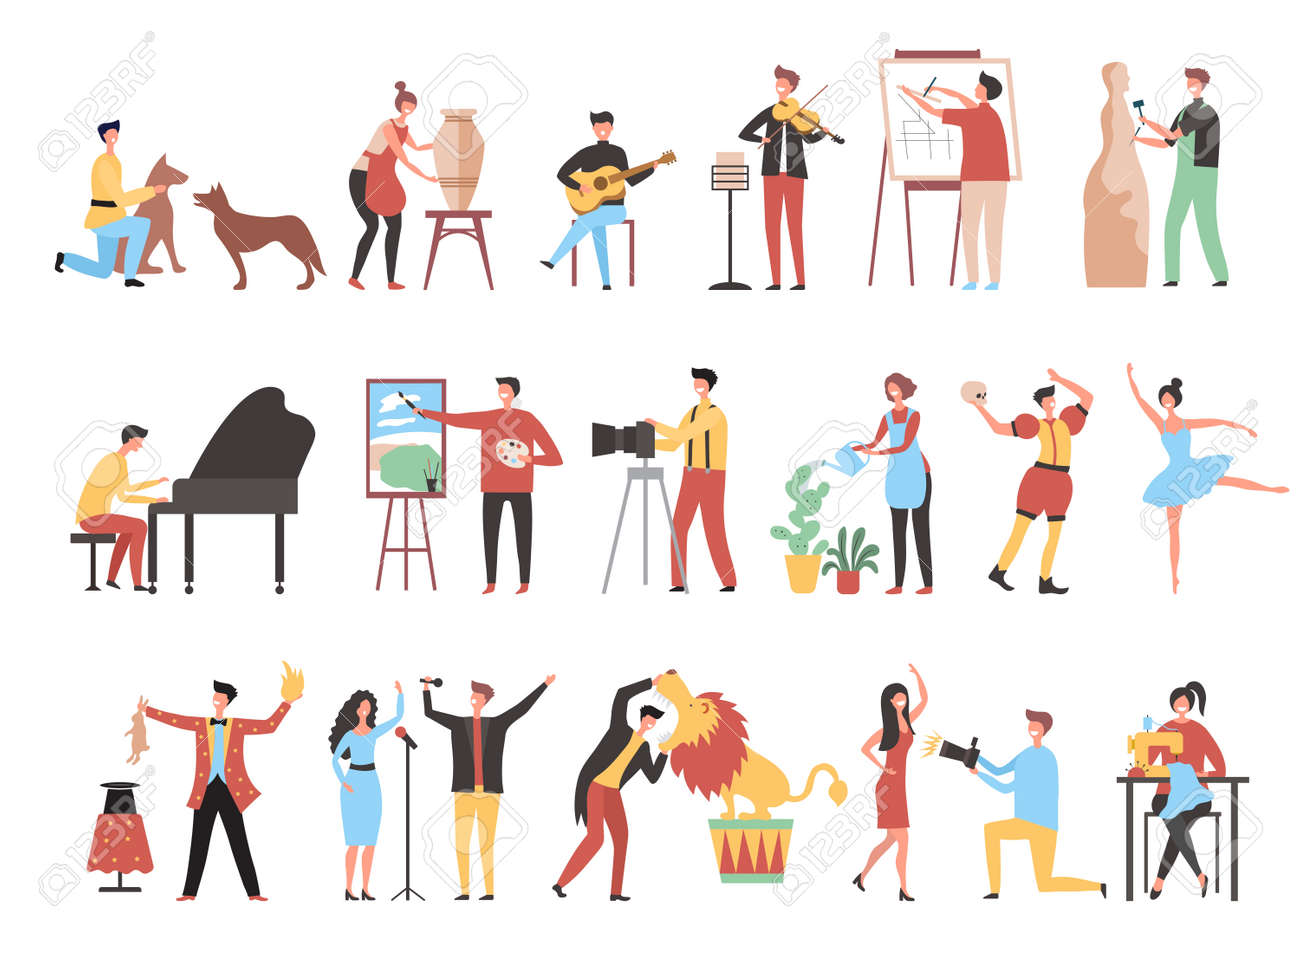 Creative occupation. Art work hobbies freelance artistic characters decorator painters artists photographers recent vector stylized persons working - 168828489